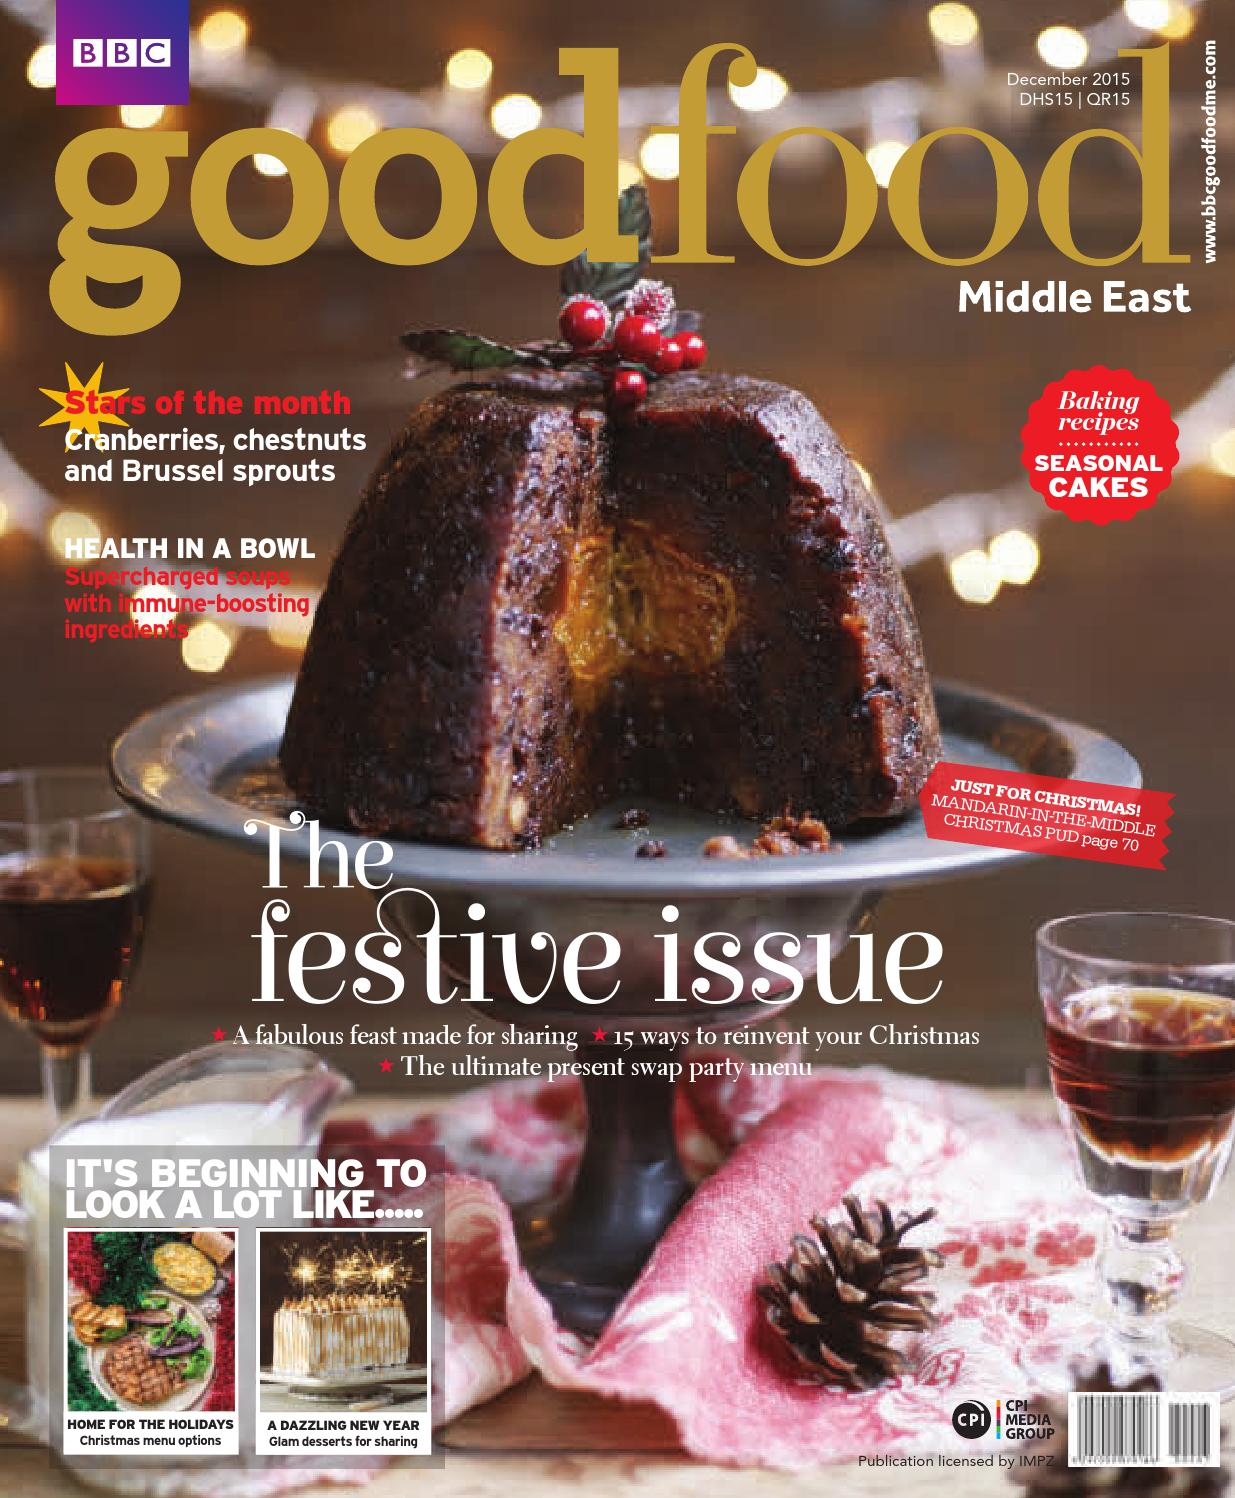 Bbc good food me 2015 december by bbc good food me issuu forumfinder Images